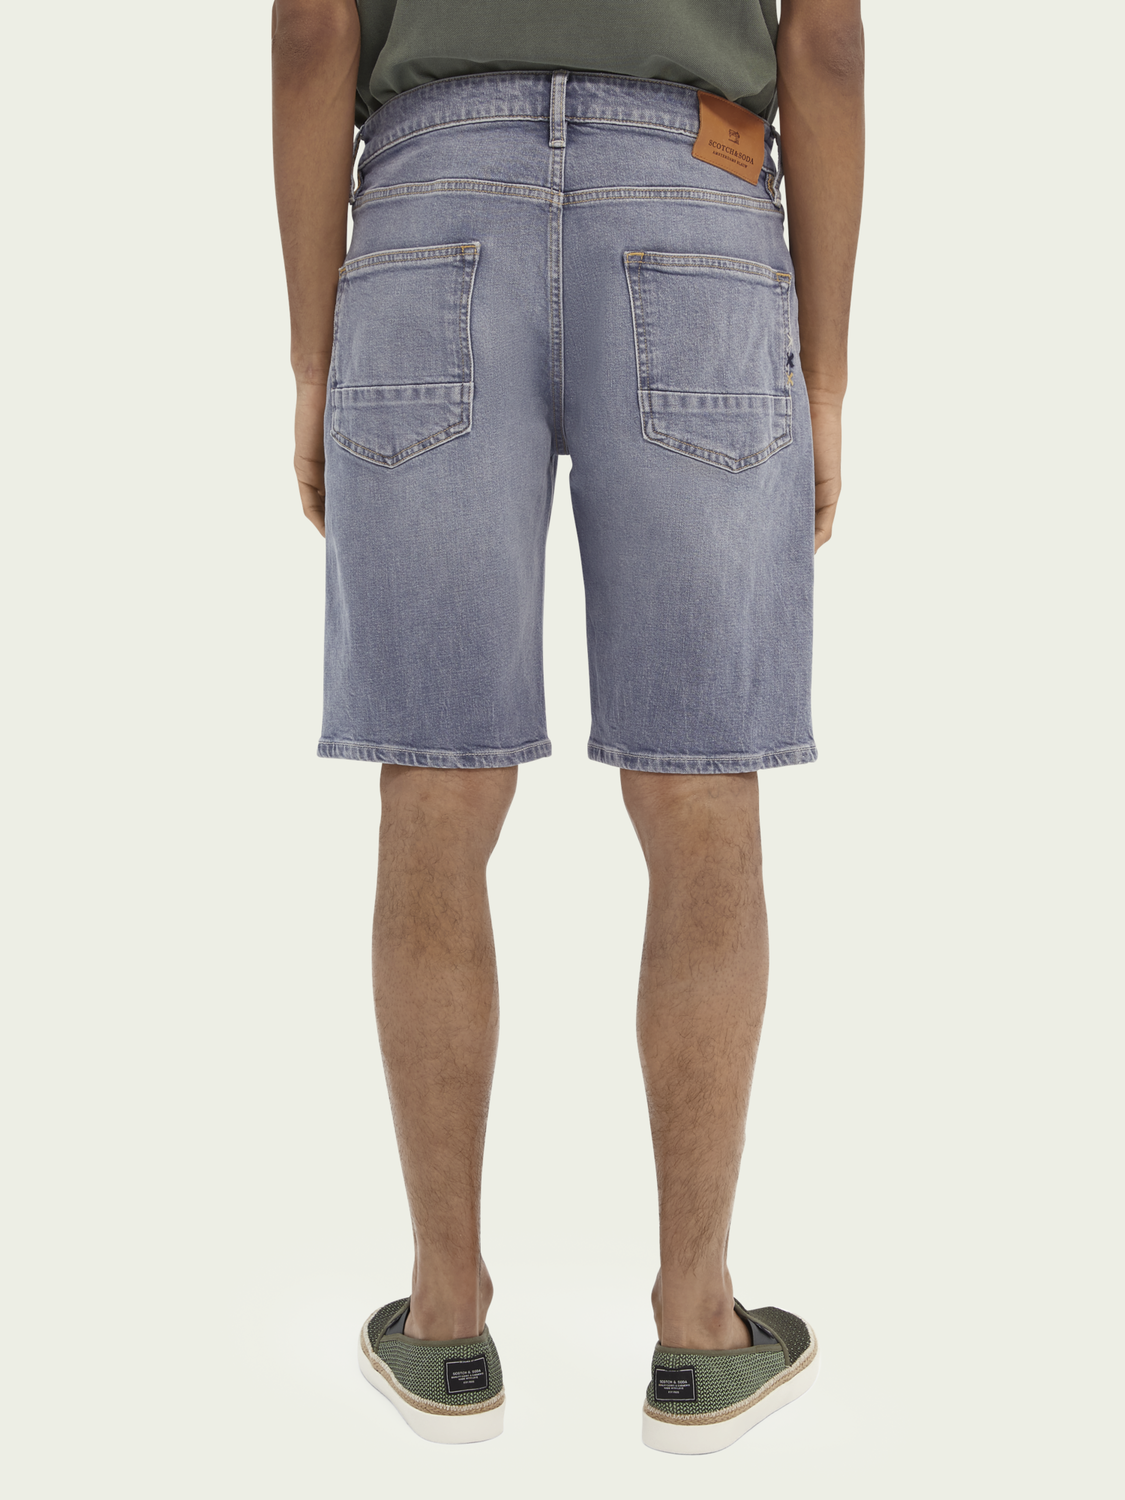 Men Ralston recycled cotton short - Pop Of Smoke